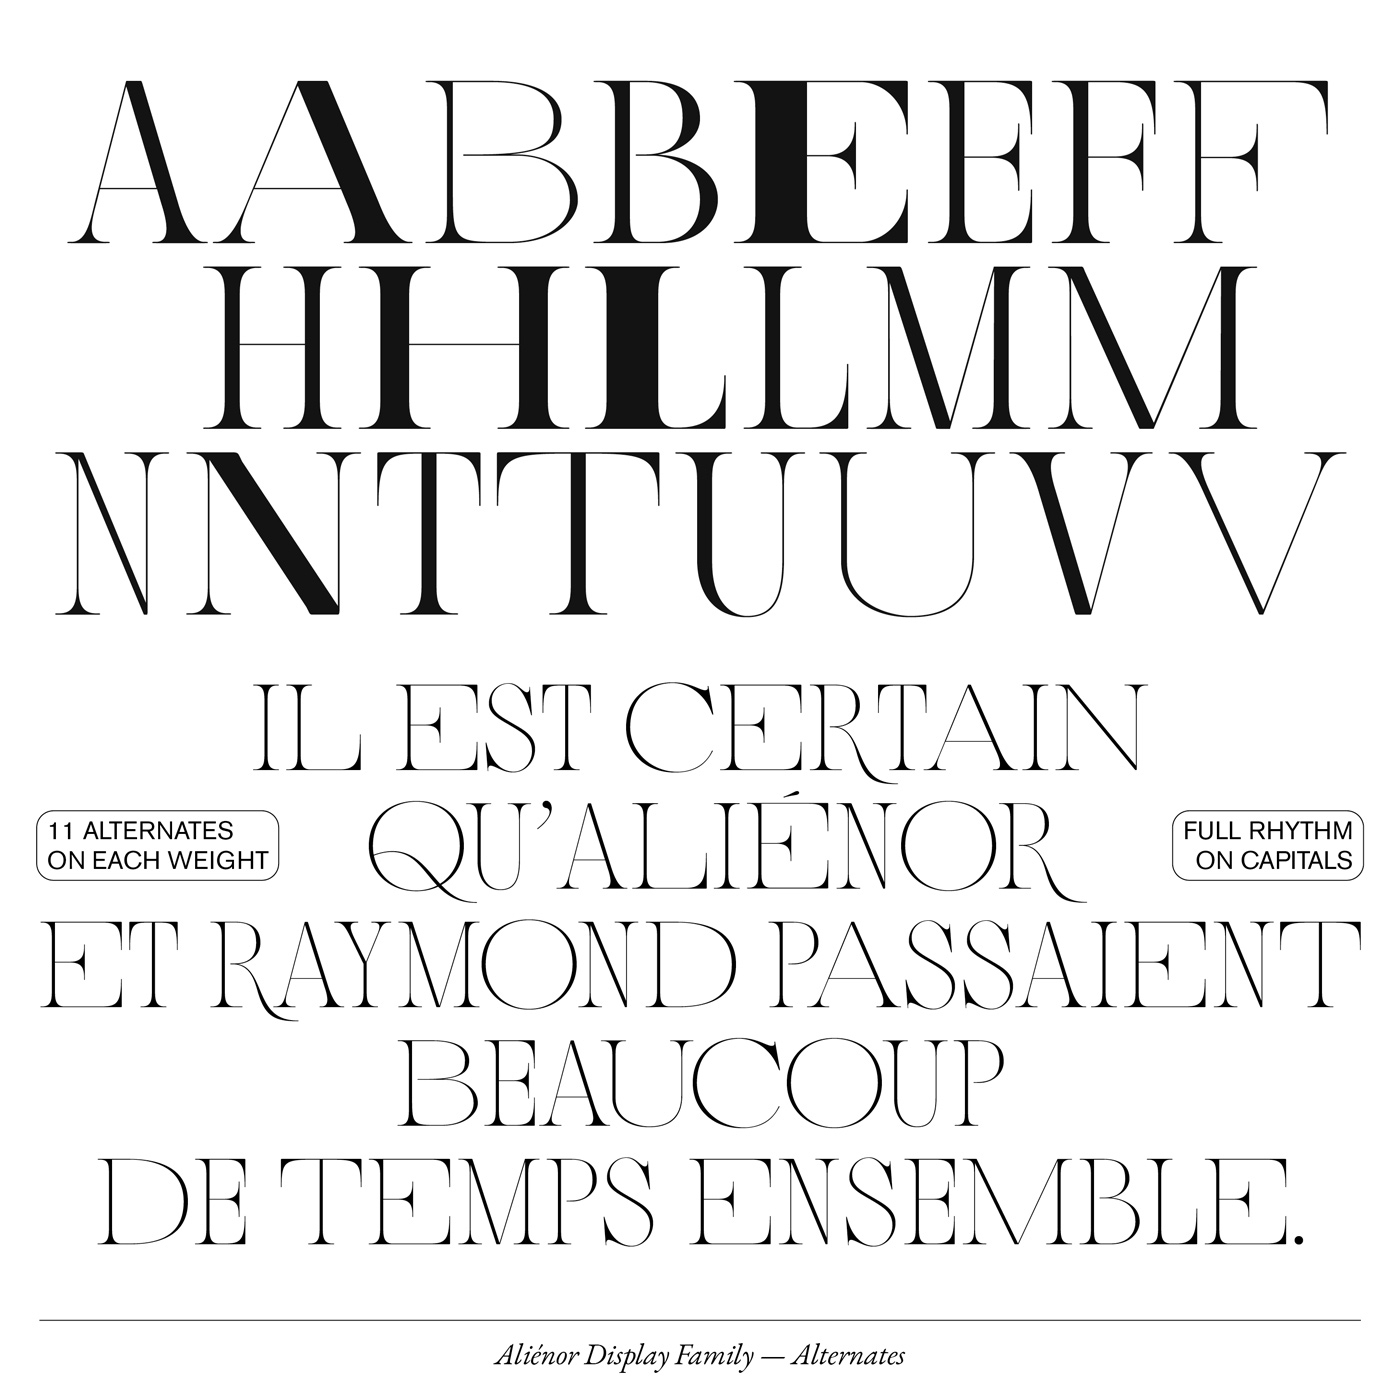 05 collide24 Lou Rainaldo Anne Dauphine Borione - The typeface 'Aliénor' by Anne-Dauphine Borione and Lou Rainaldo is a mixture of elegance and extravagance